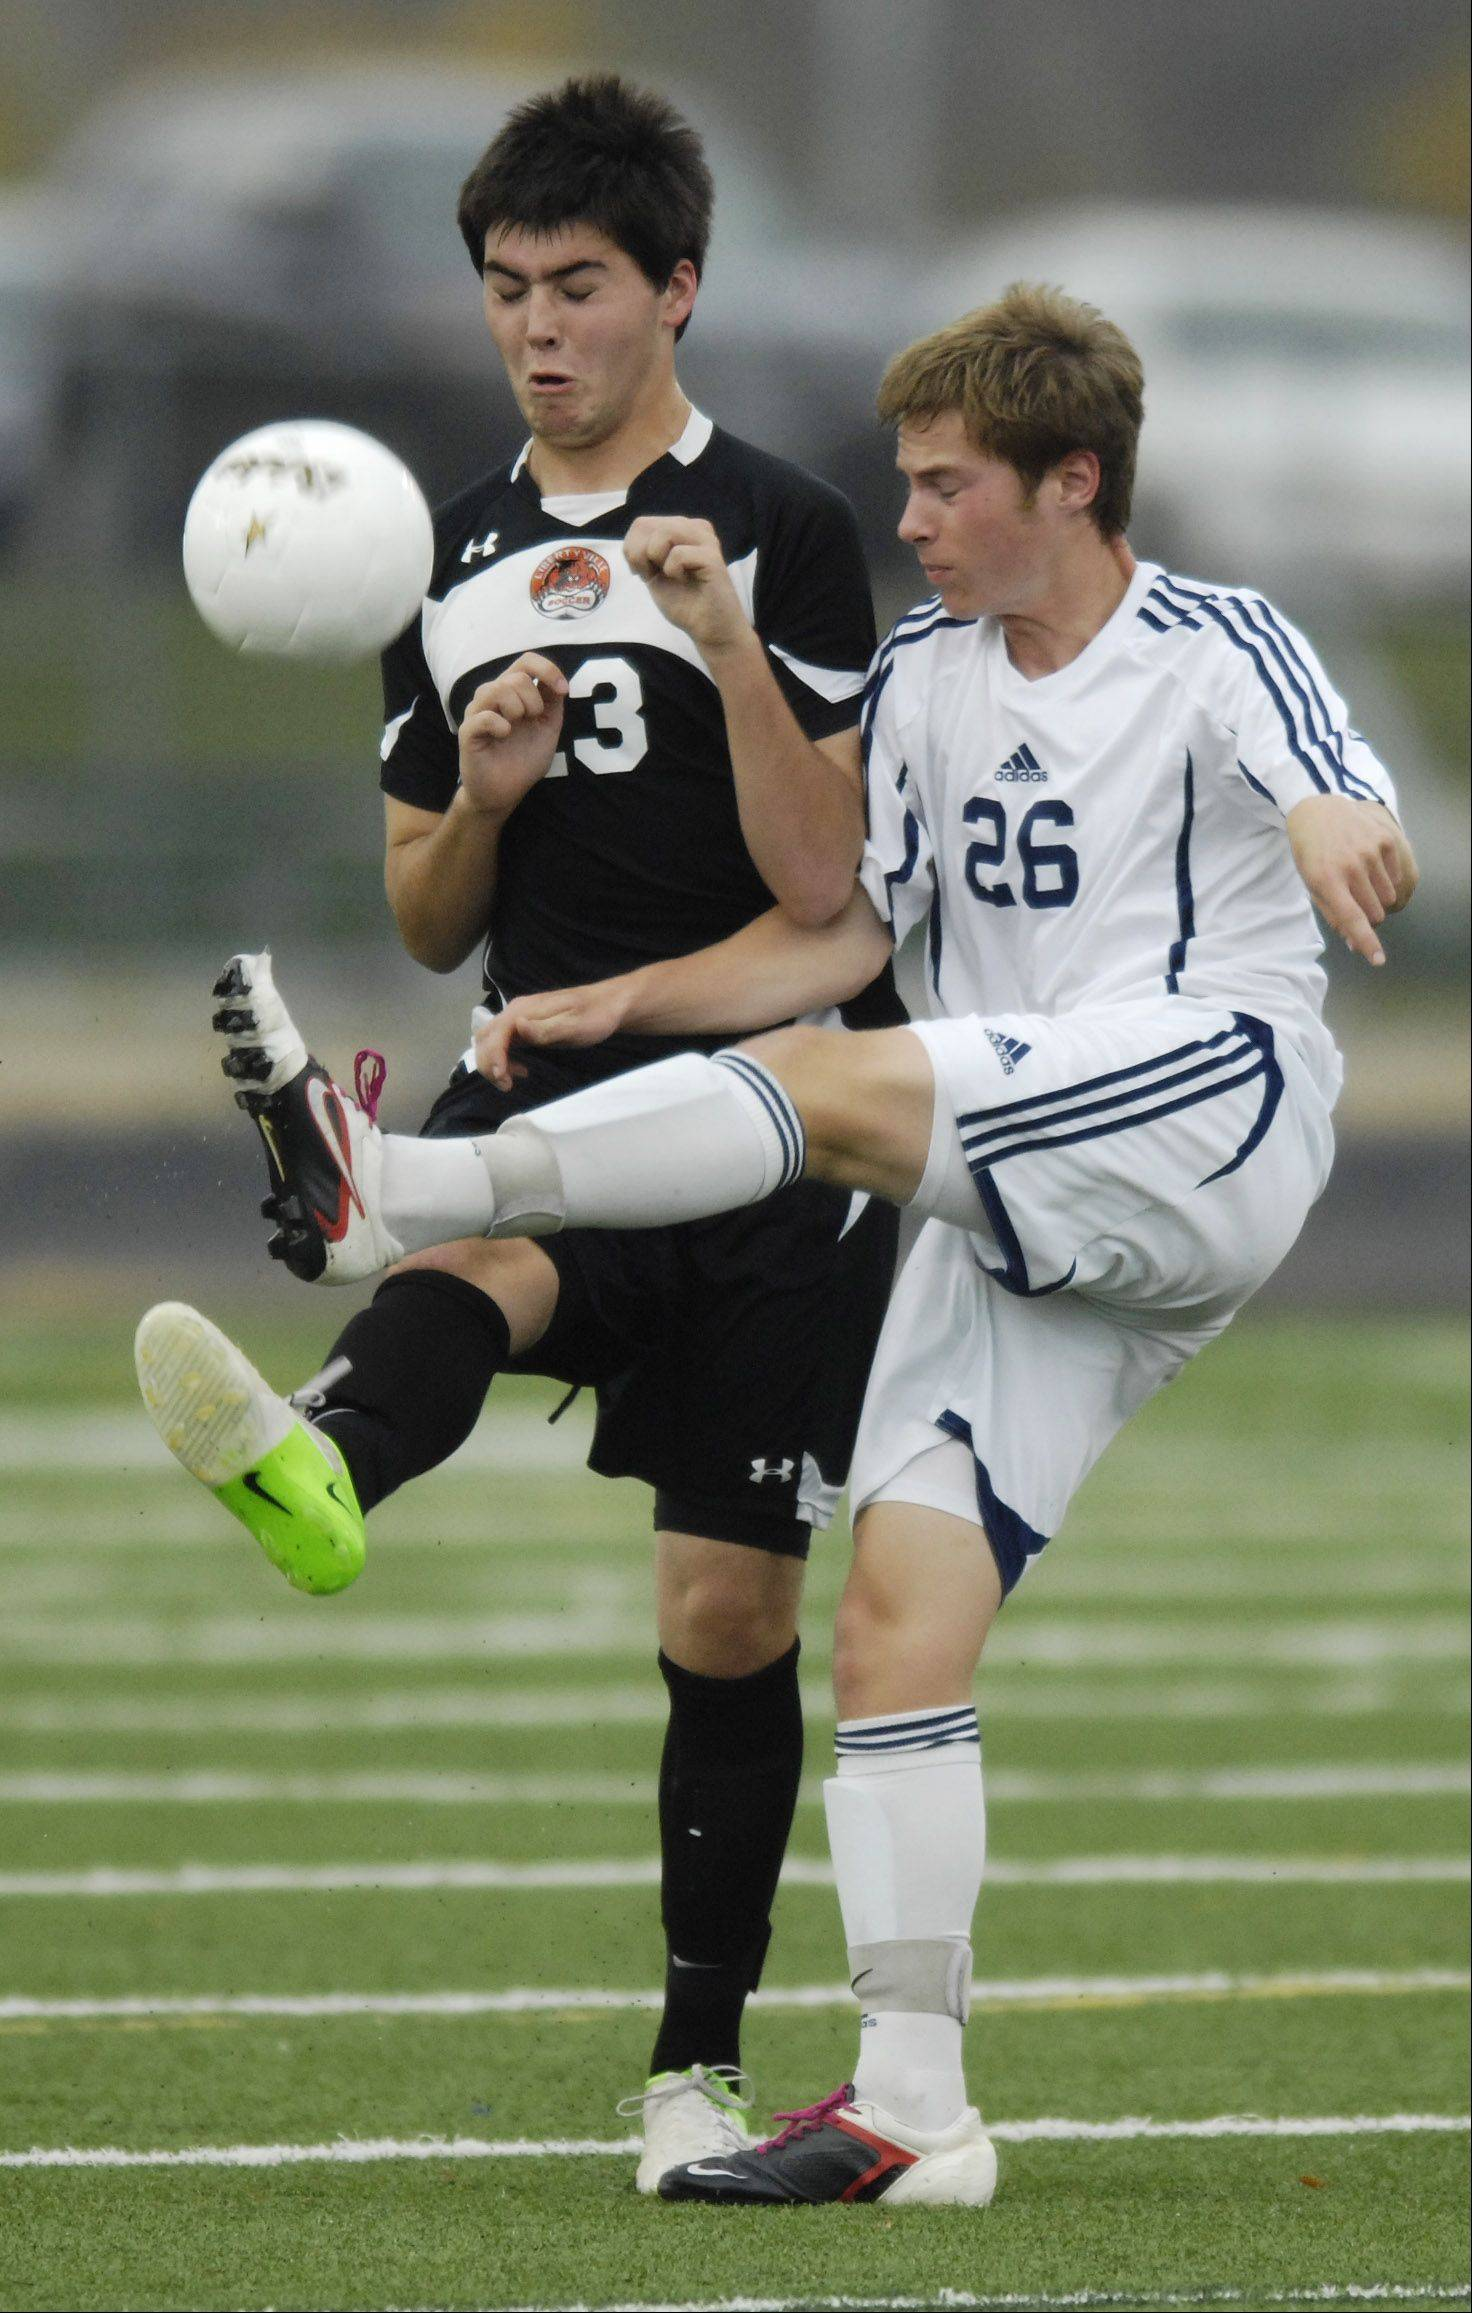 Prospect's Steven Mutzabaugh, right, gets to the ball ahead of Libertyville's Phillip Williams during Tuesday's sectional semifinal at Conant.